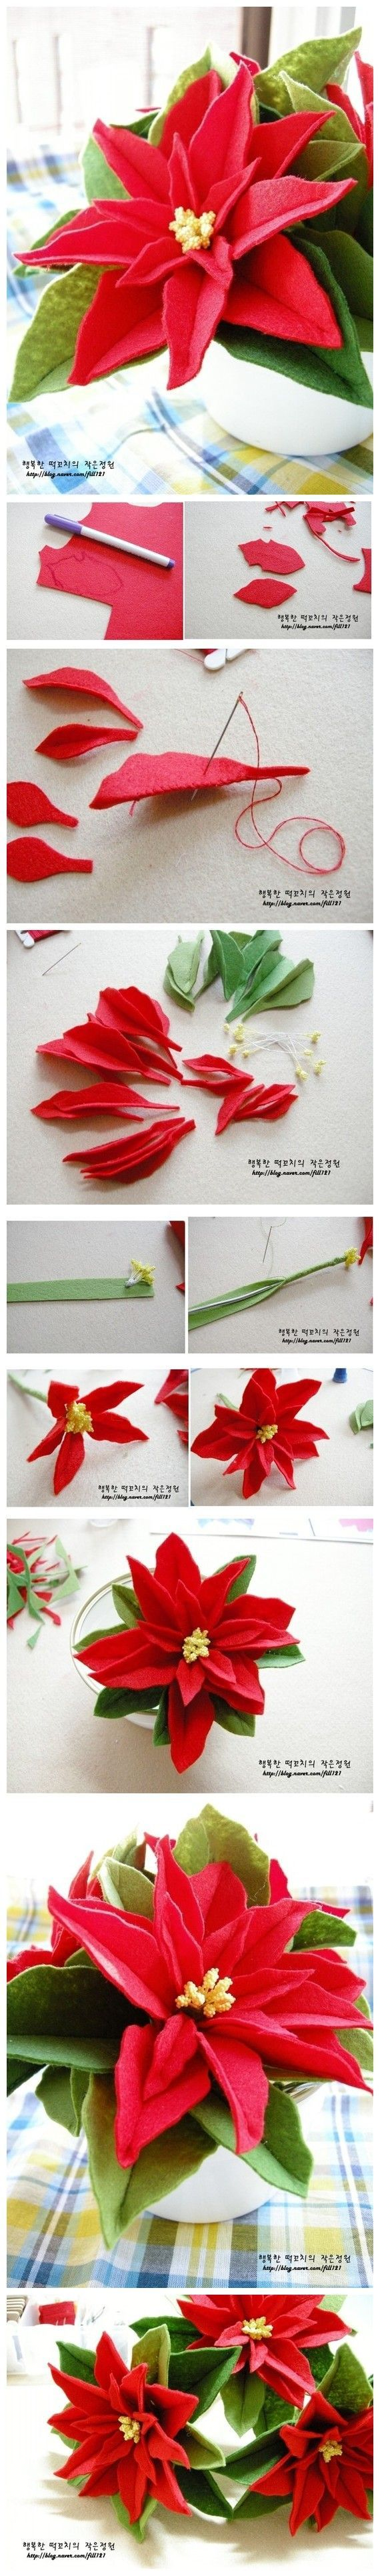 felt poinsettia tutorial _ #Christmas #Sewing Craft #DIY Holiday: